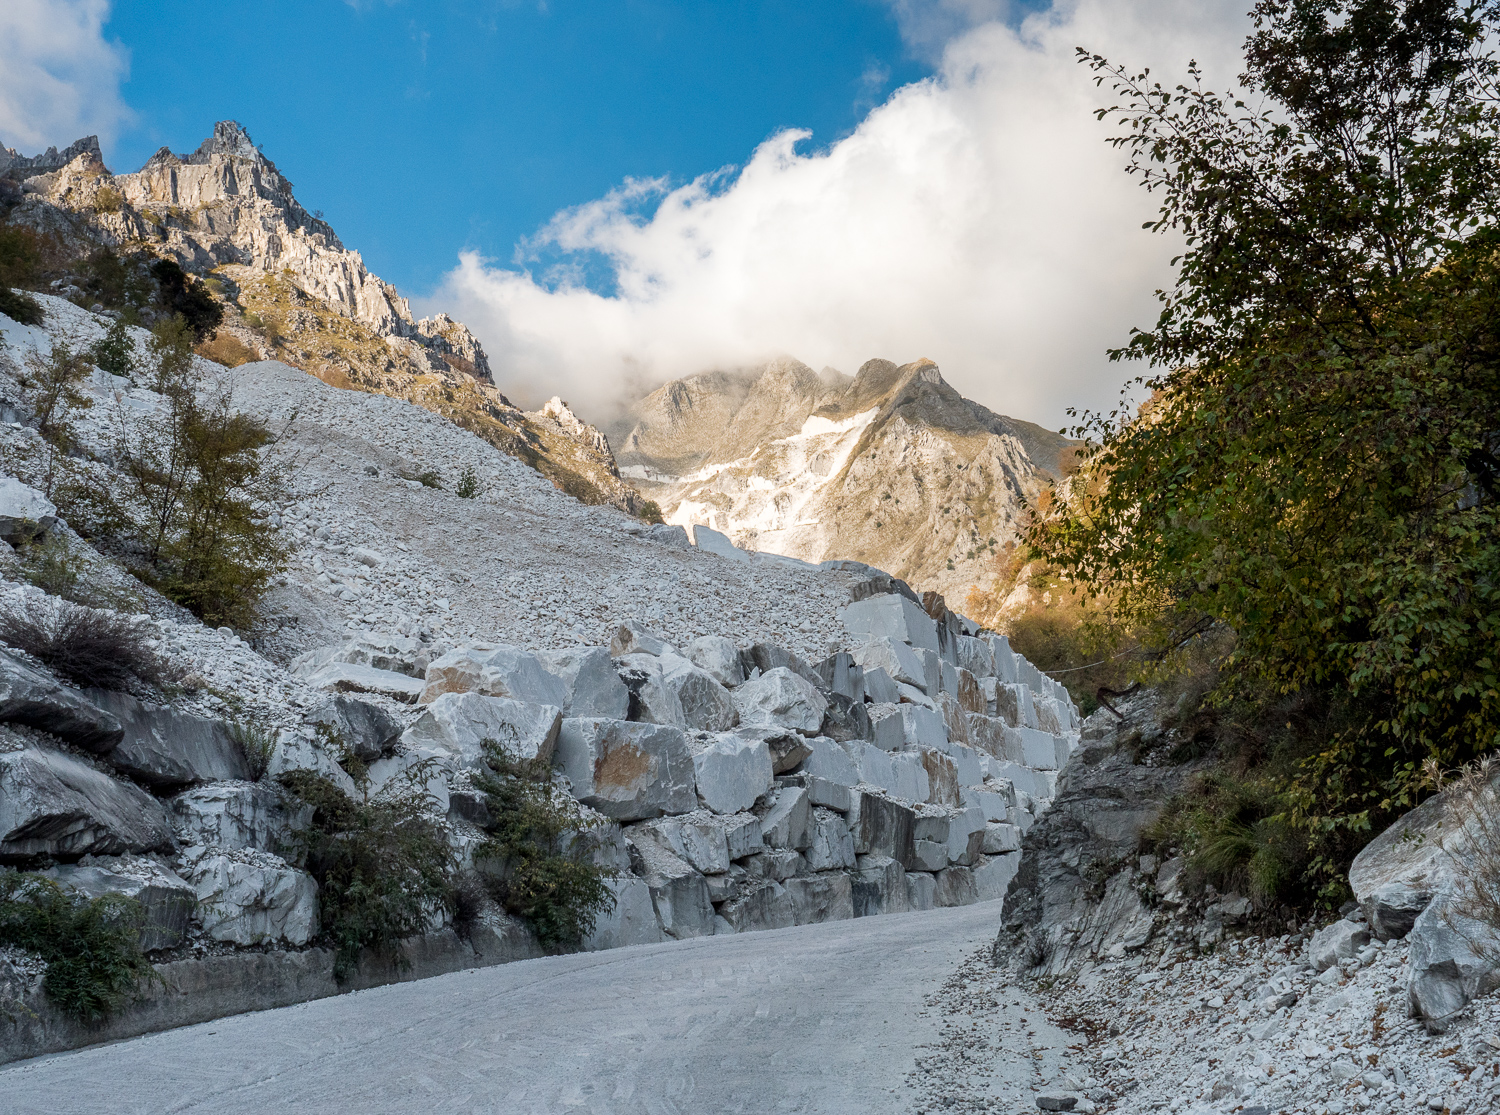 The marble quarries of Carrara, Tuscany